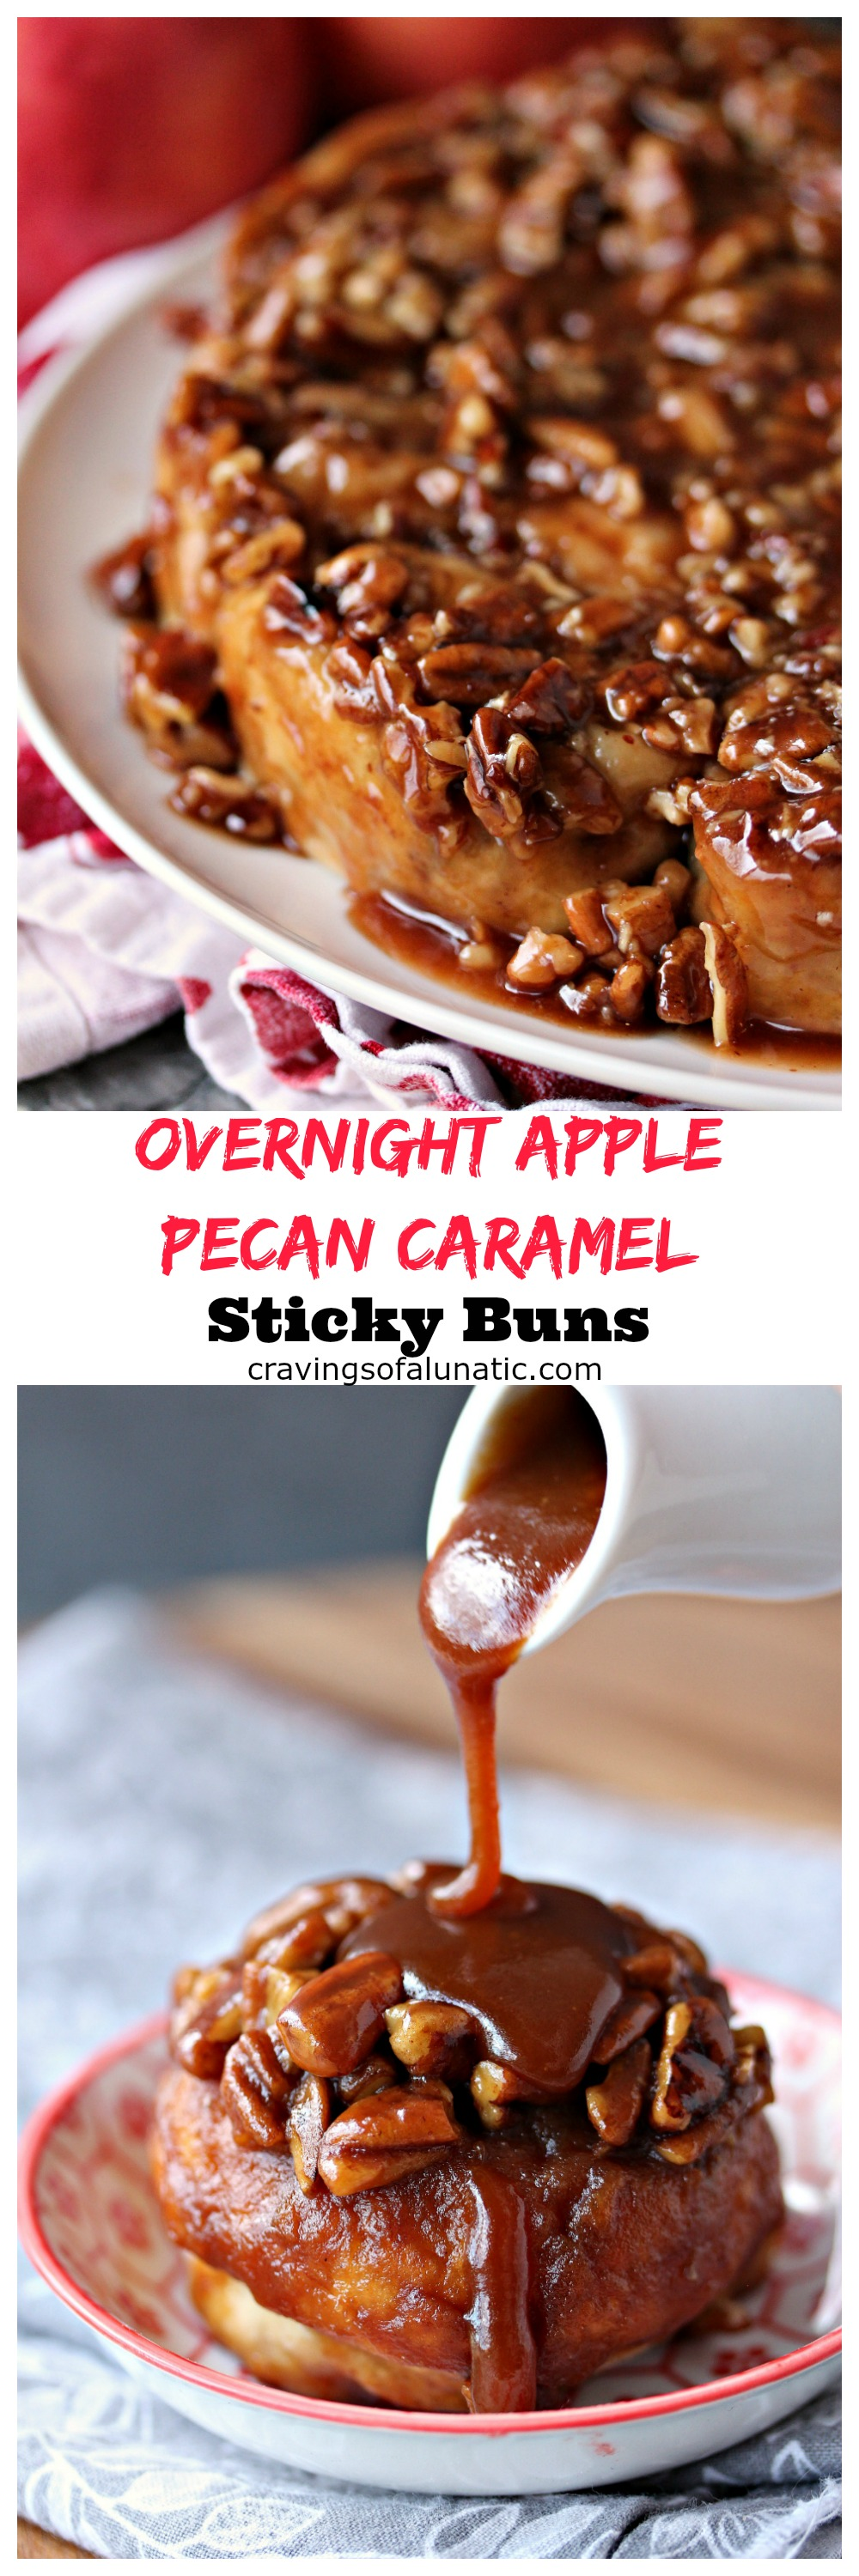 Overnight Apple Pecan Caramel Sticky Buns from cravingsofalunatic.com ...